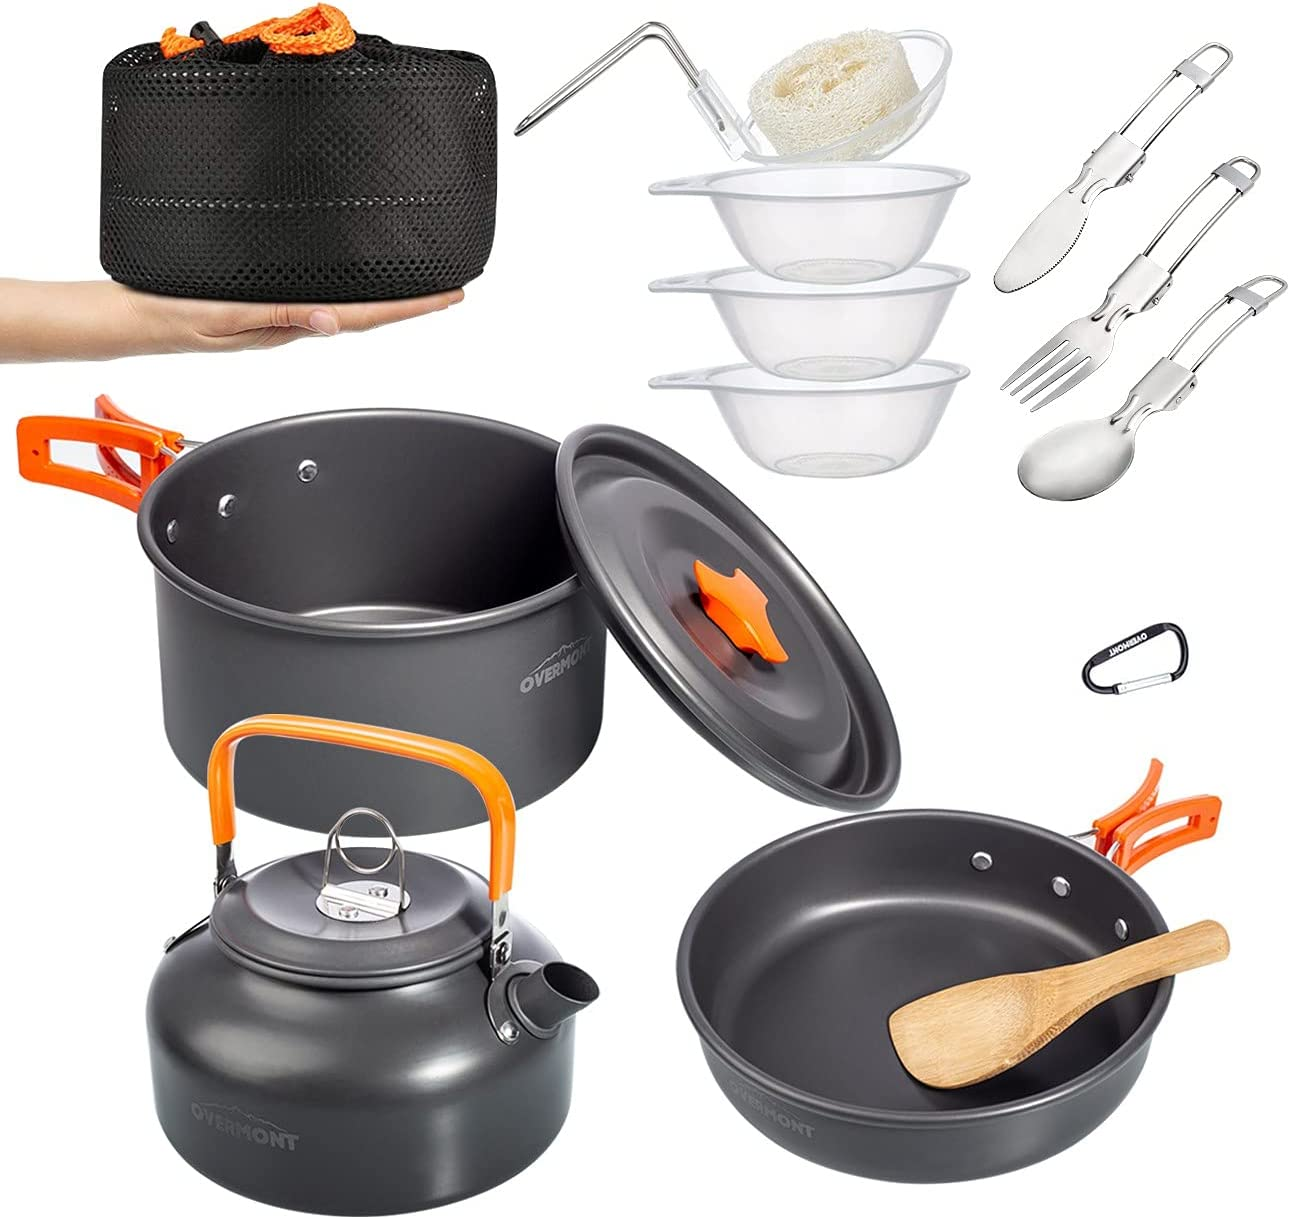 Overmont 1.95 Liter Pot+ Limited Special Price Rapid rise Kettle Perso Set Camping Cookware 1-2